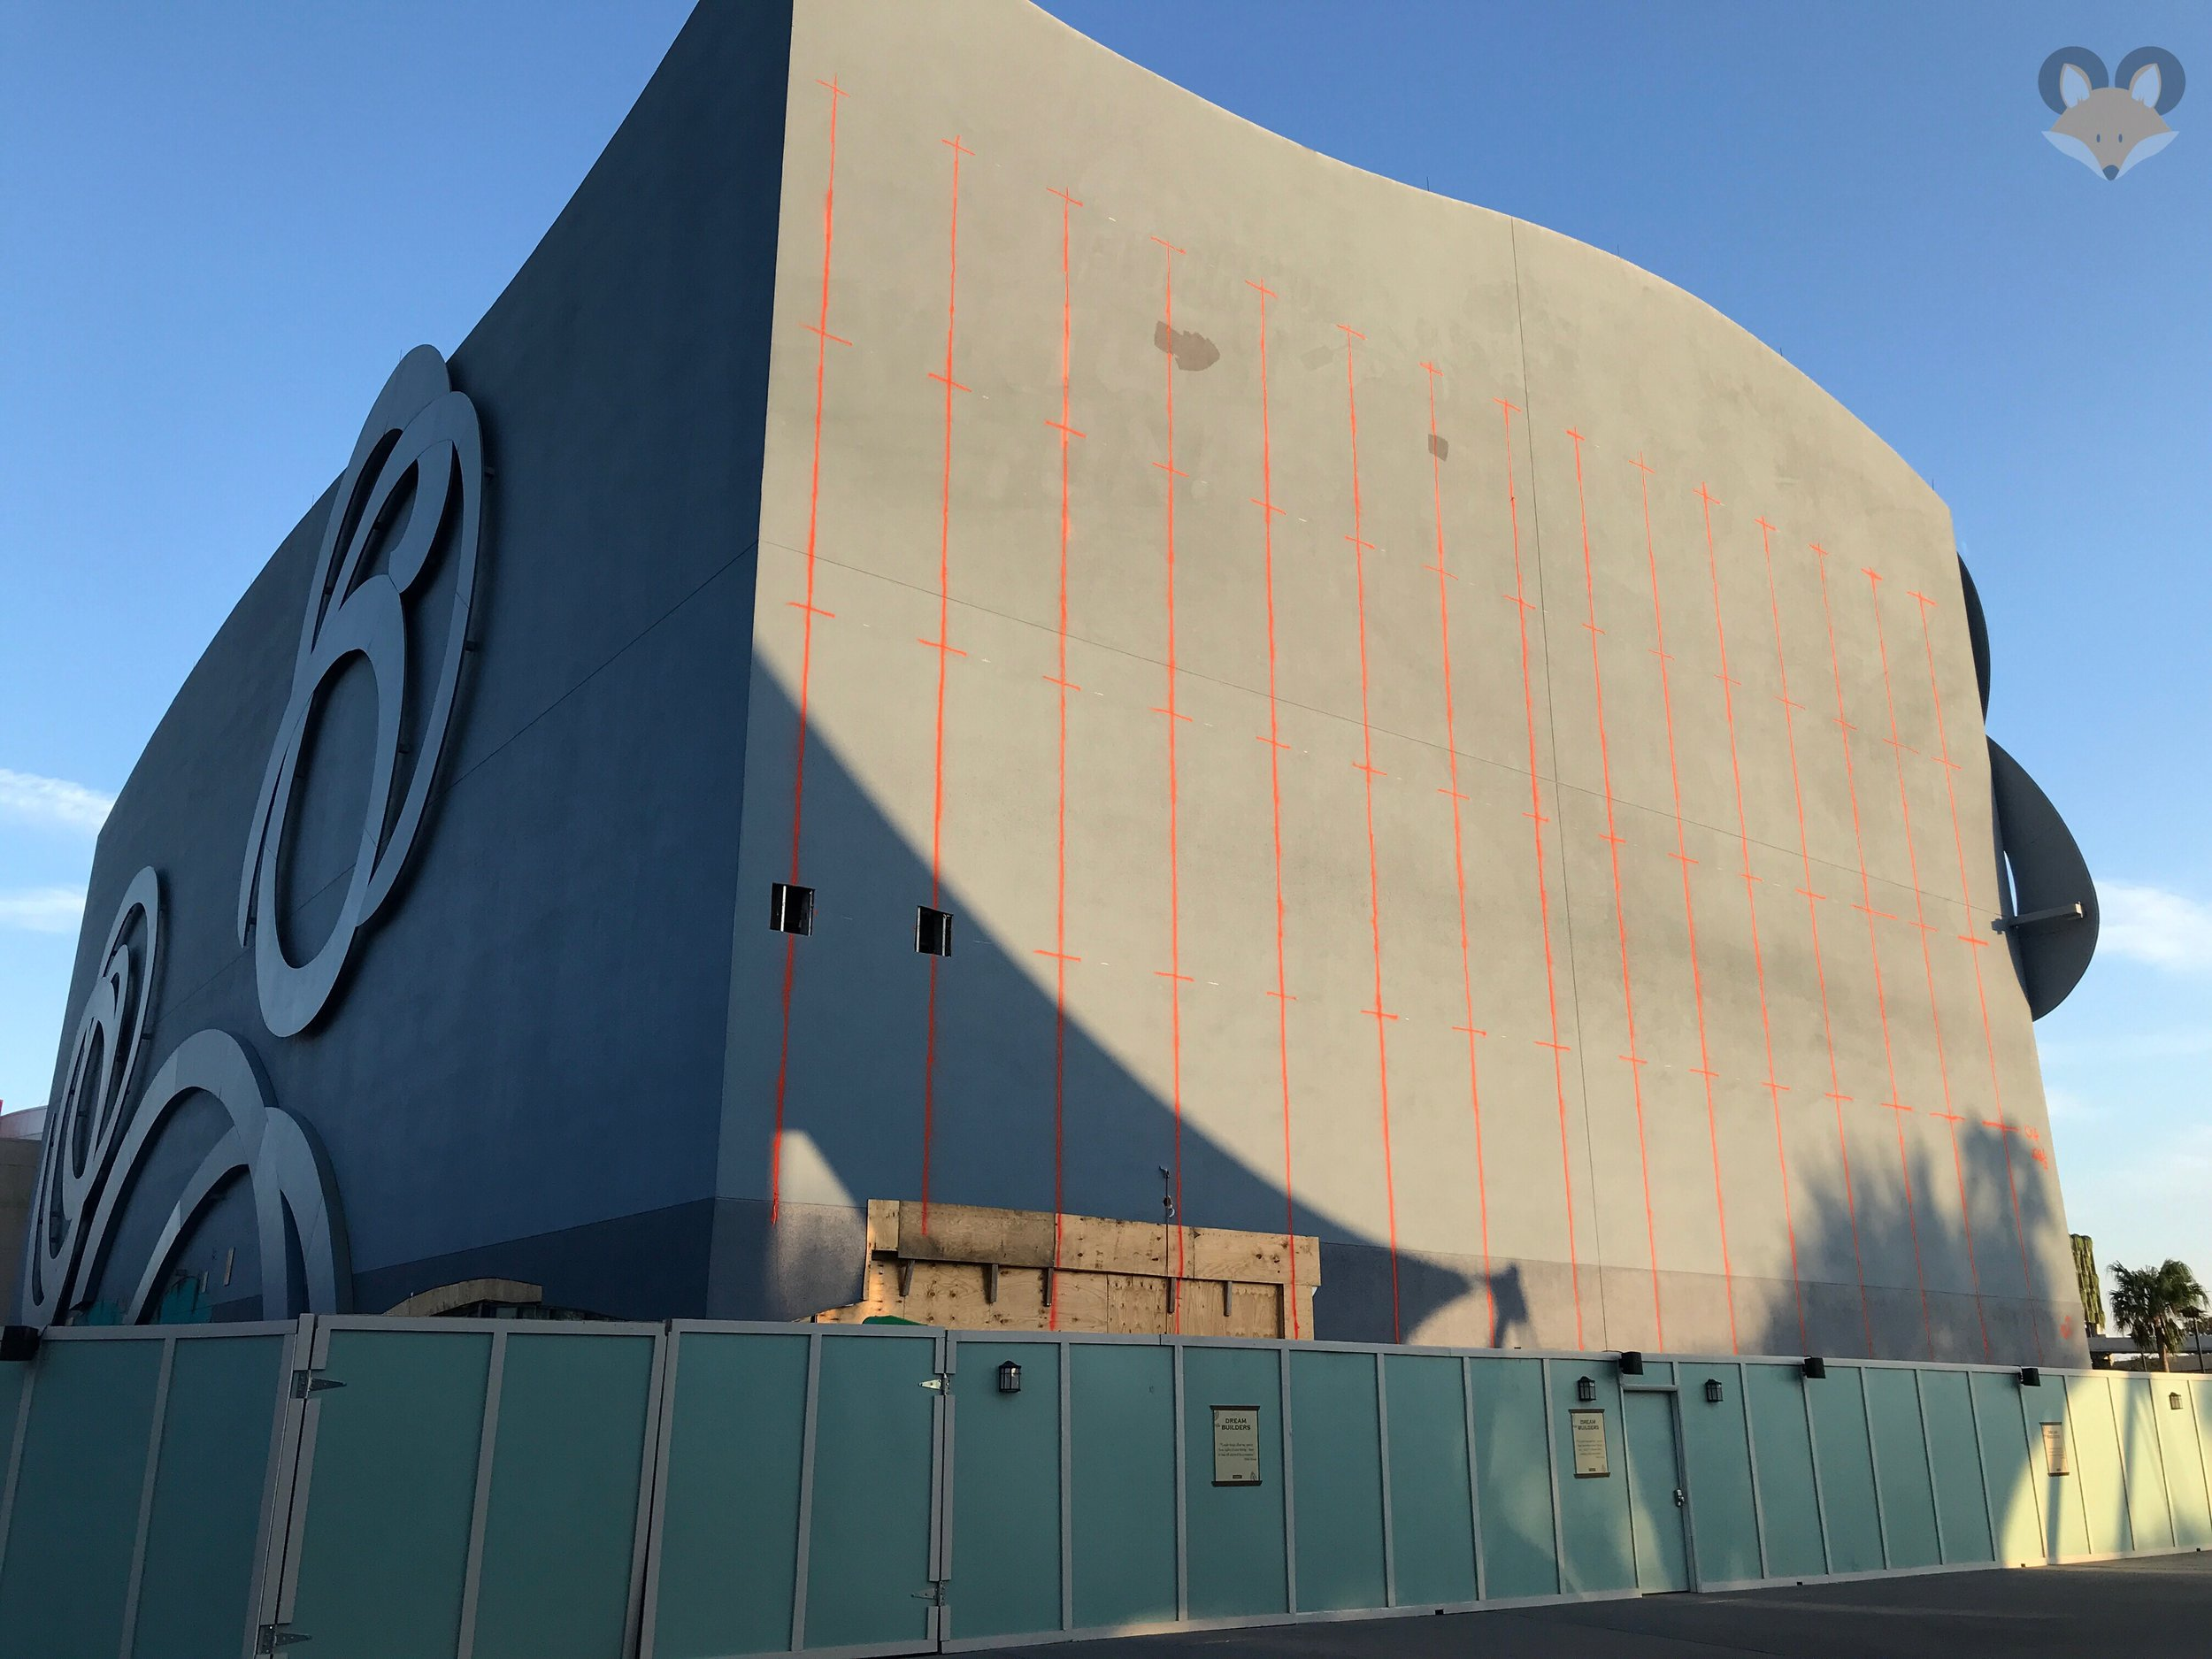 The side facing Cirque is prepped with orange spray paint to help the crews control the demolition.